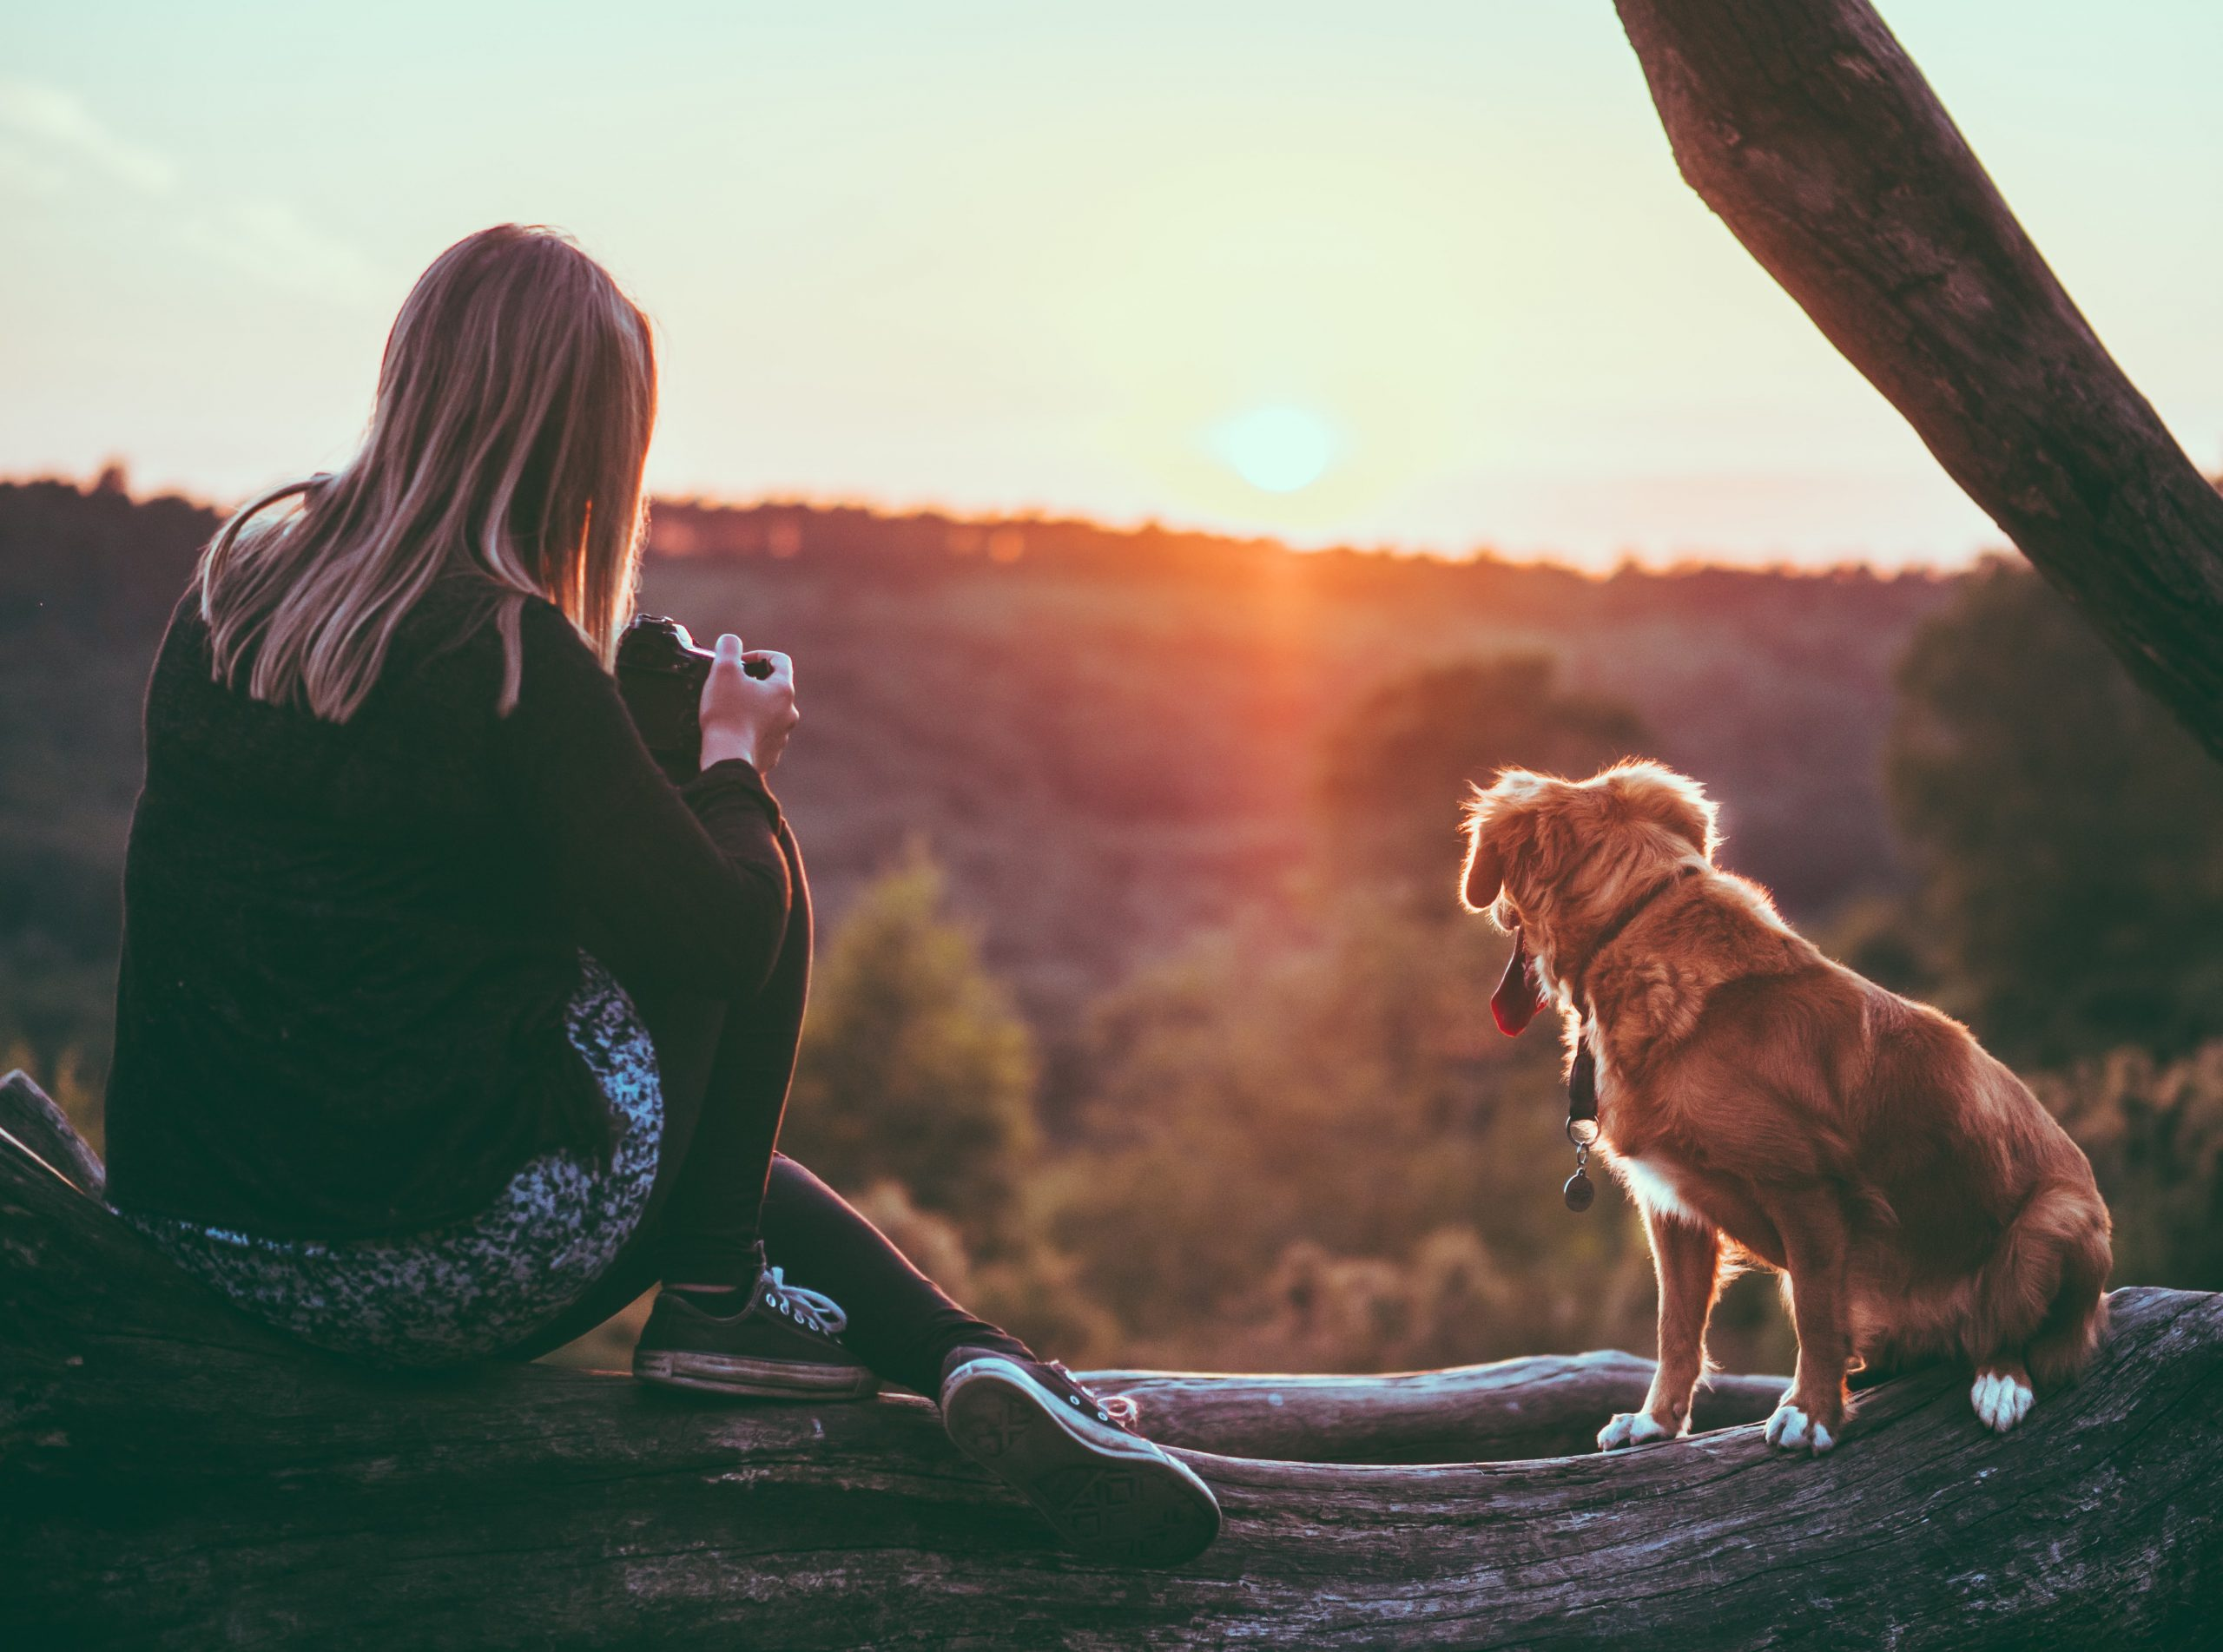 A Woman and a Dog at a Field Looking at the Sunset